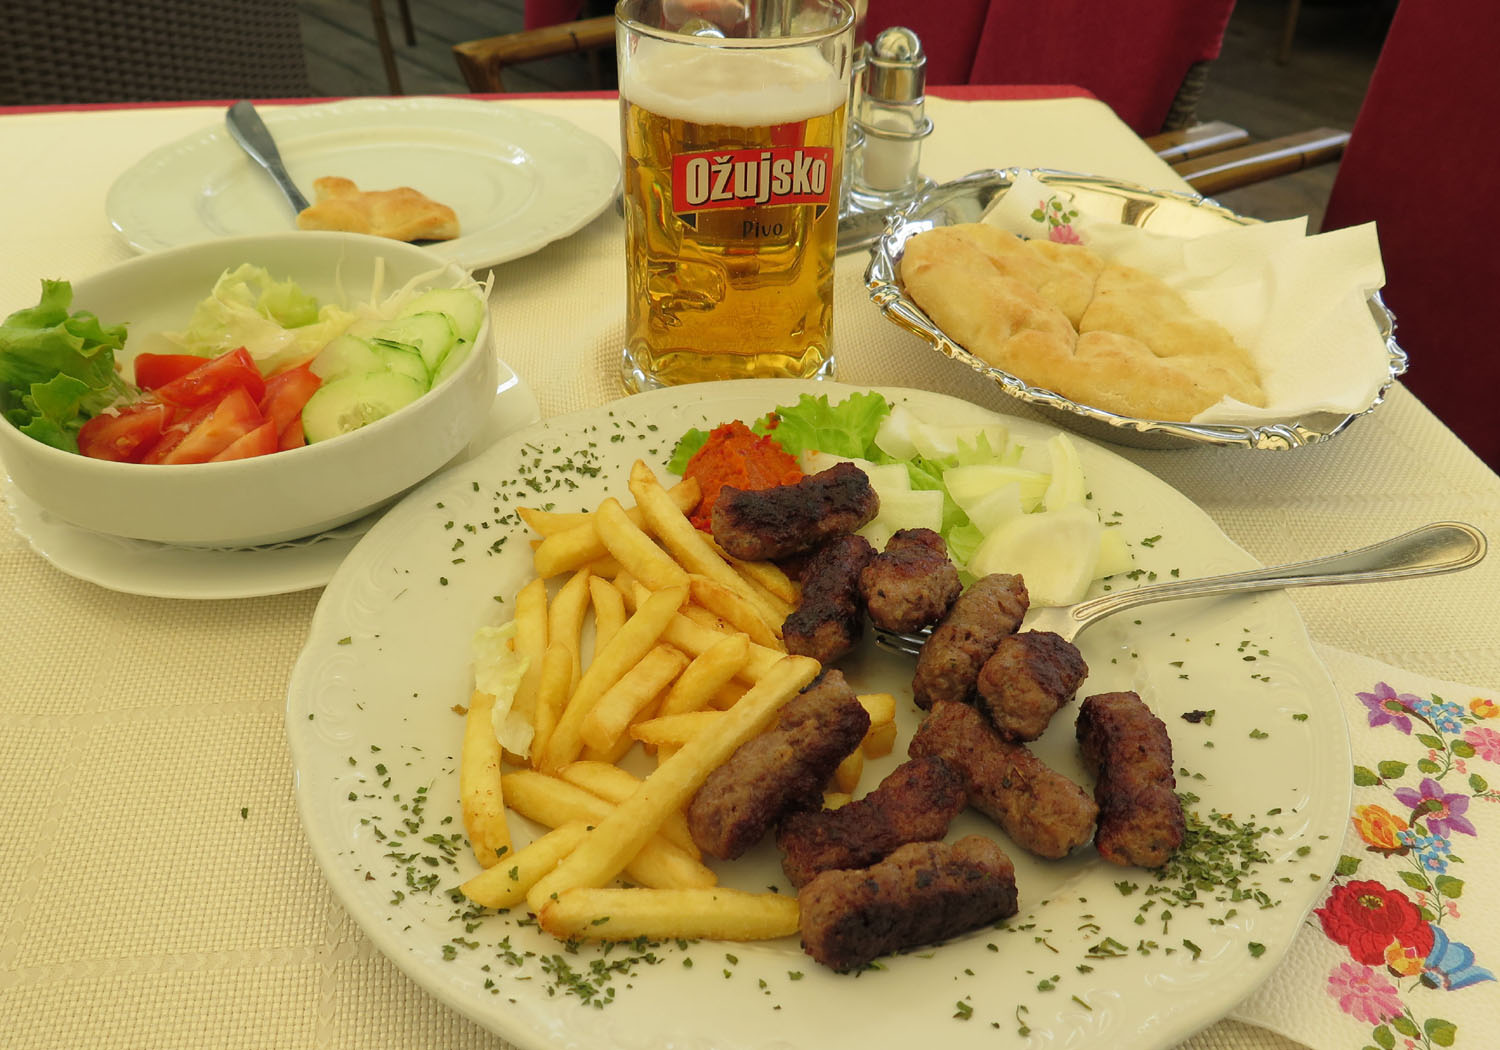 Croatia-Zagreb-Food-And-Drink-Cevapi